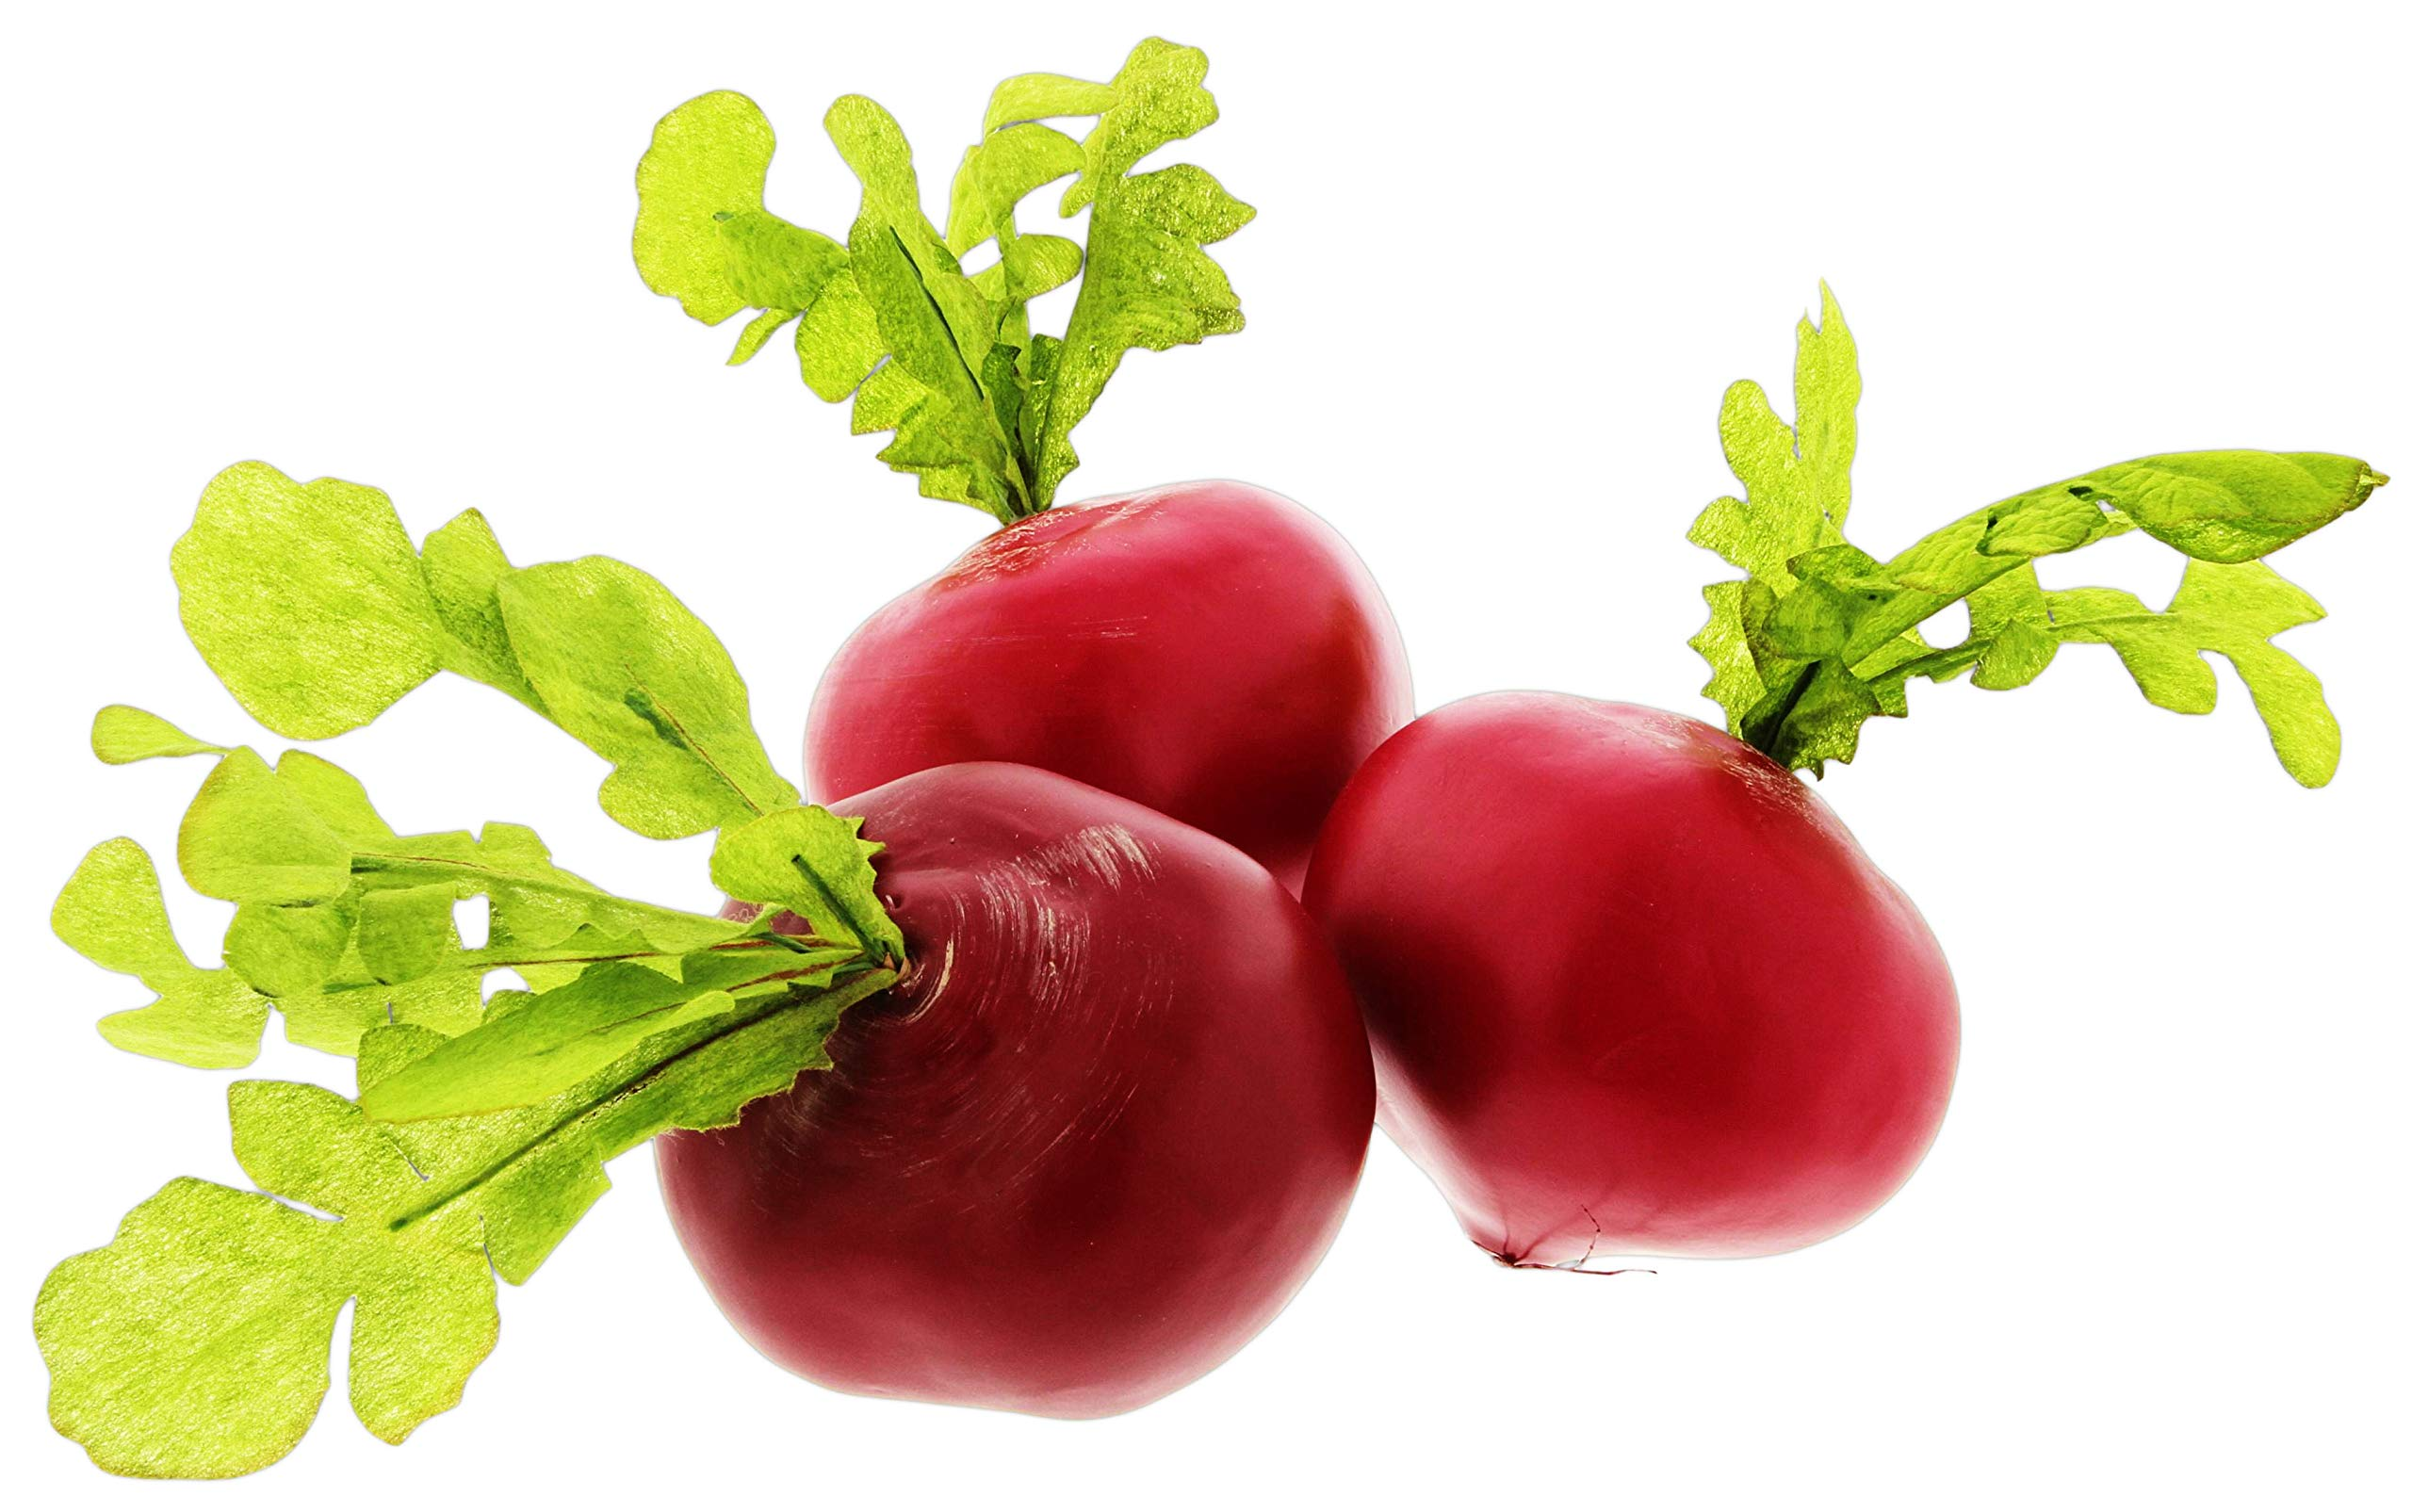 Bundle of 3 Flora Bunda Red Radishes Replica Props - Red